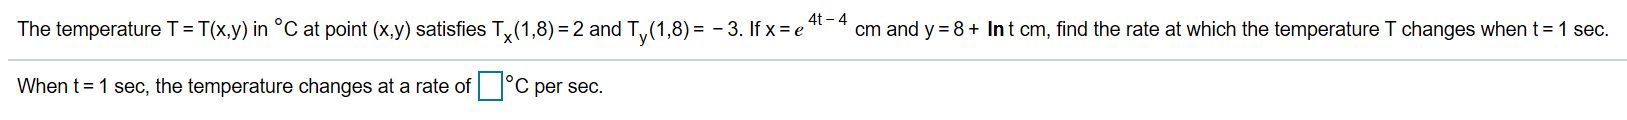 4t-4 cm and y 8+ Int cm, find the rate at which the temperature T changes when t The temperature T= T(x.y) in °C at point (x.y) satisfies T,x(1,8) 2 and Ty(1,8)= -3. If x e' 1 sec. C per sec. When t 1 sec, the temperature changes at a rate of